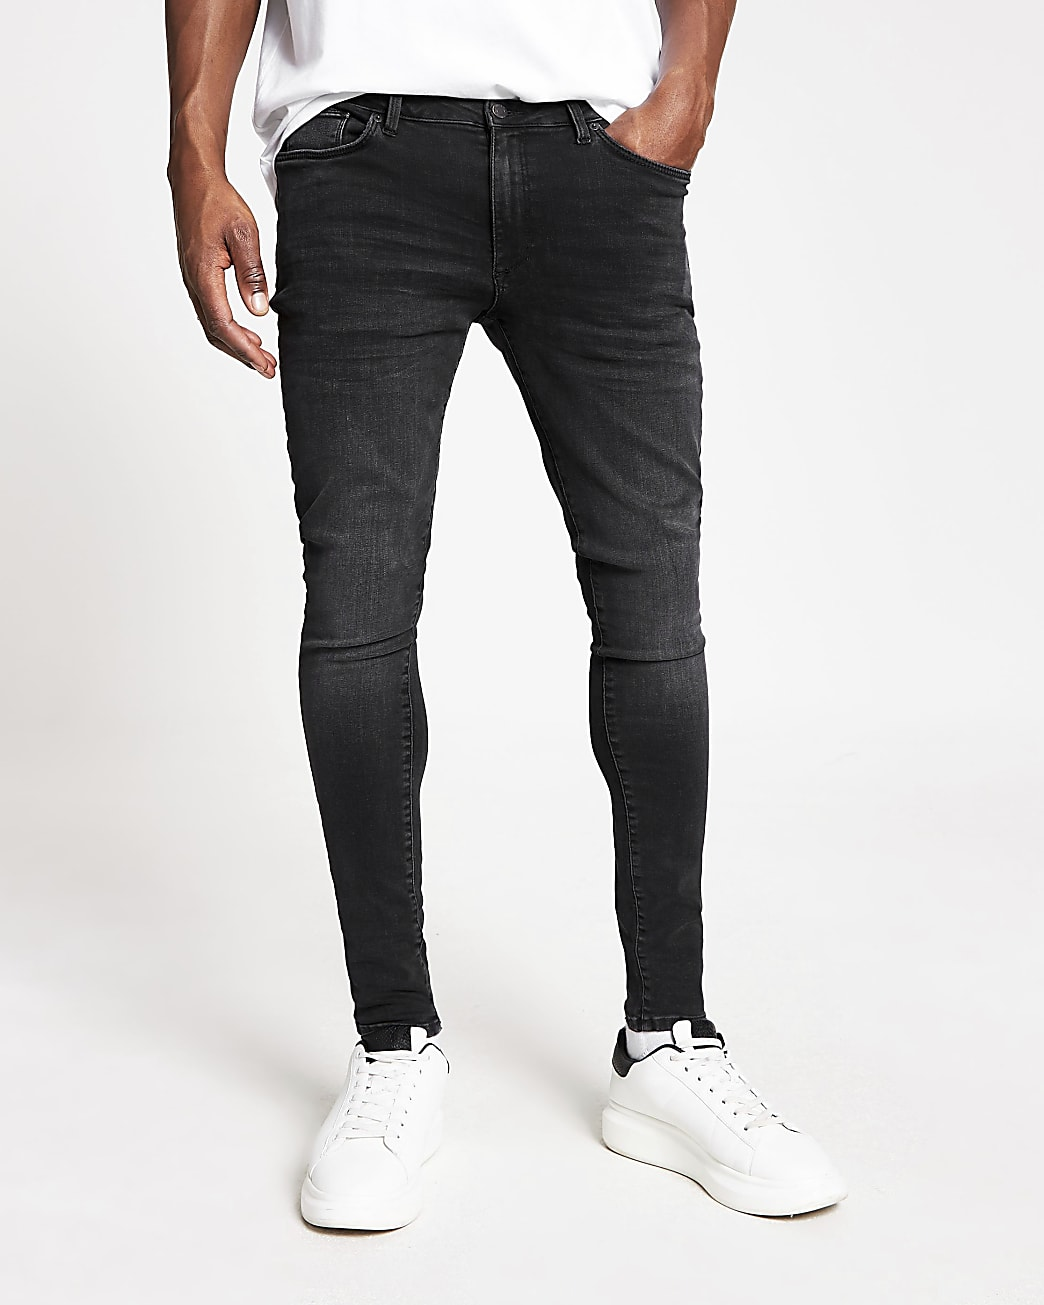 Black washed spray on skinny fit jeans